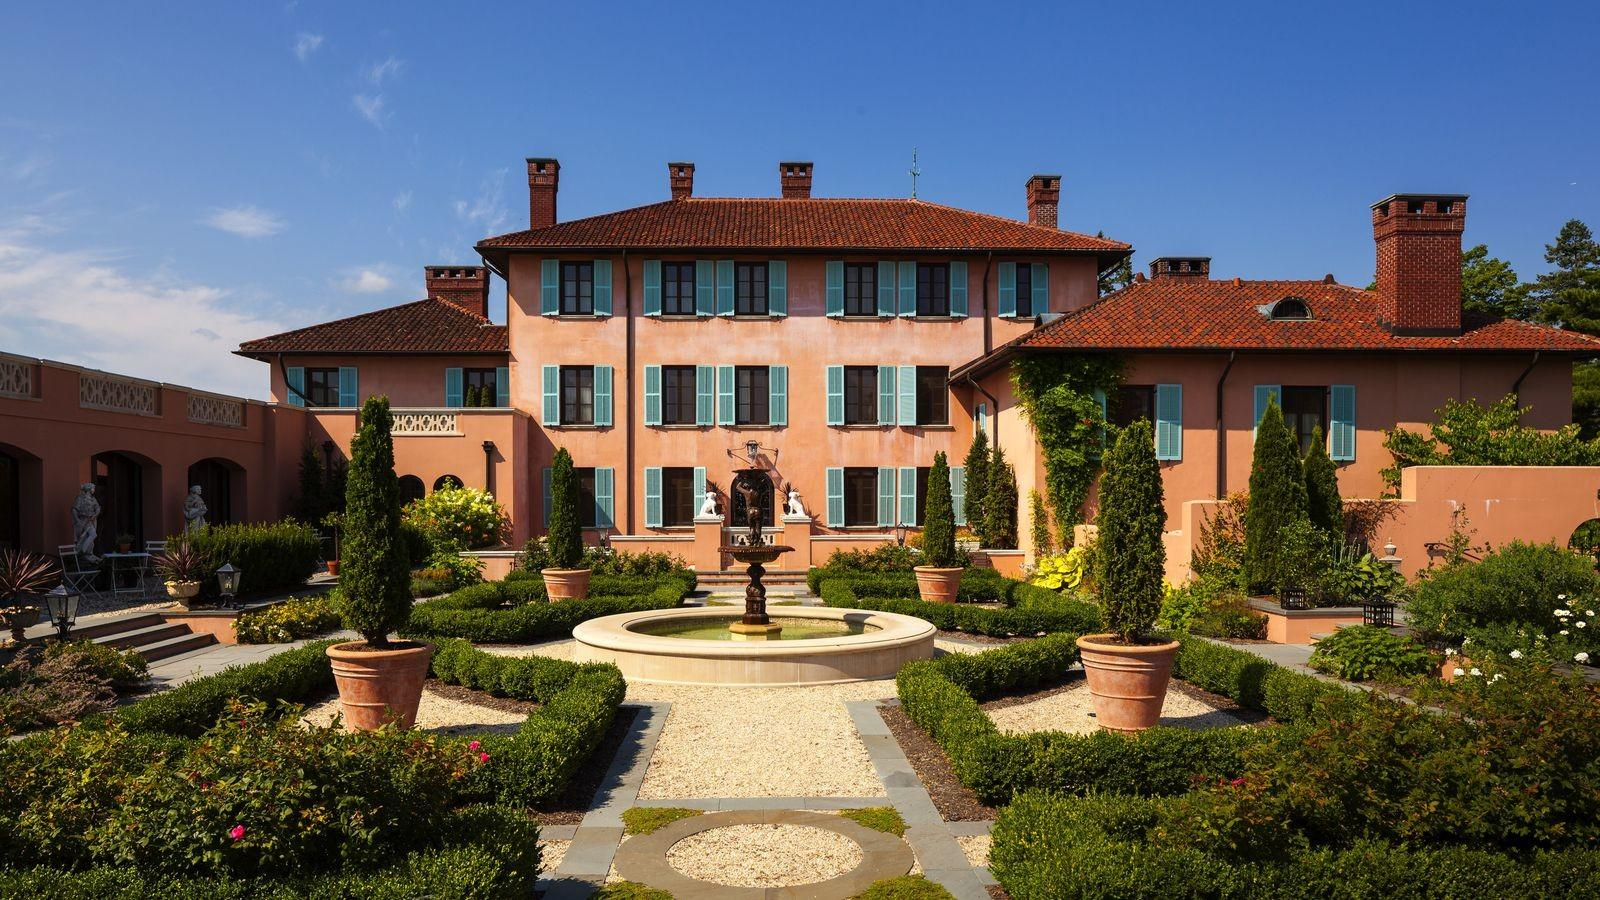 Two Neglected Mansions Became Leading Luxury Hotels